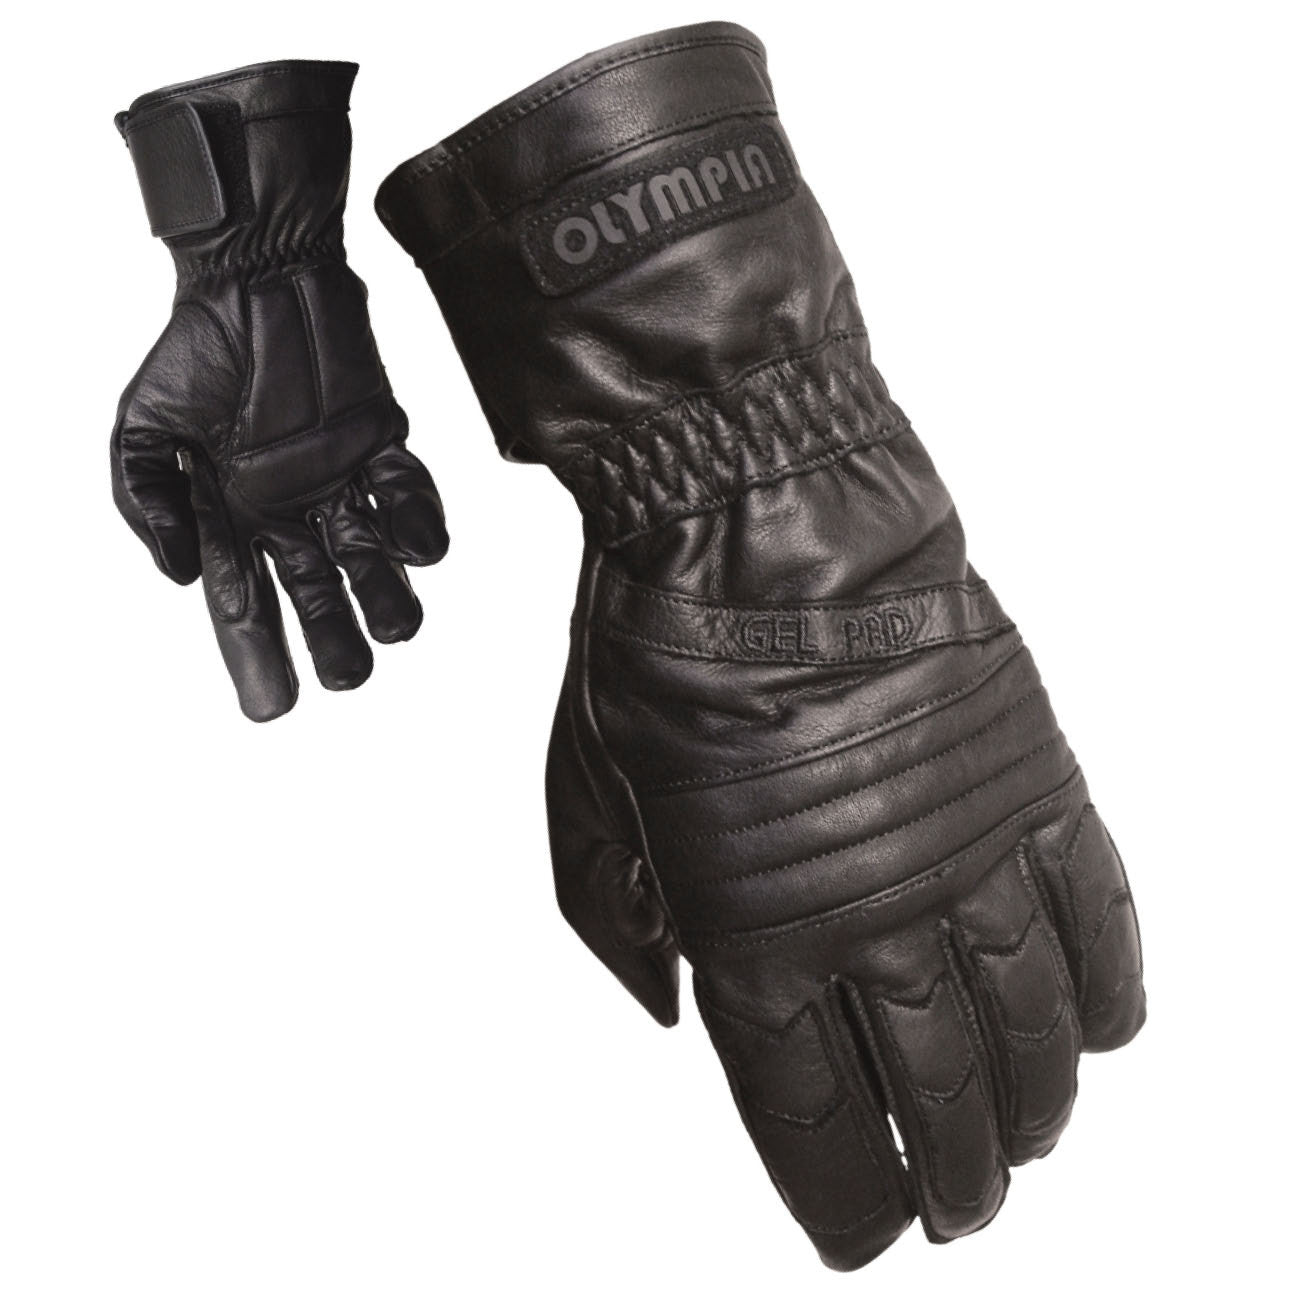 Olympia 410 Gel Sport Gloves | Leather Motorcycle Gloves